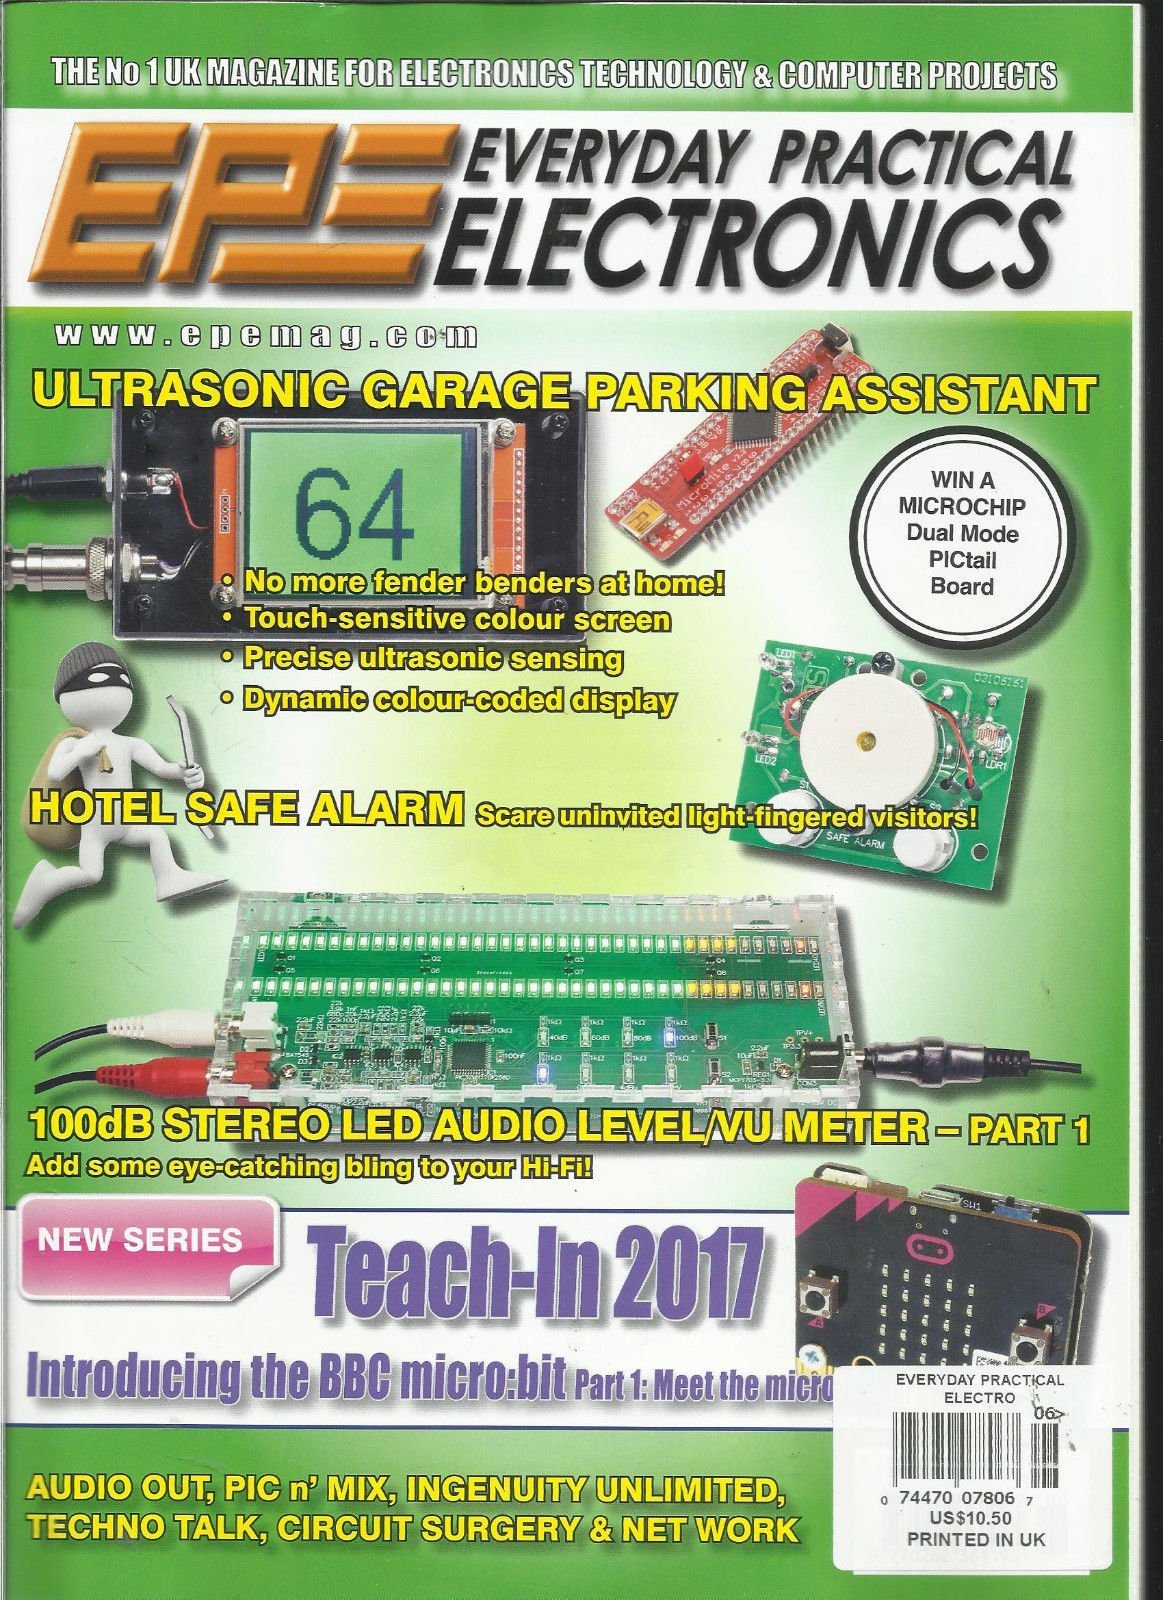 EPE EVERYDAY PRACTICAL ELECTRONICS, JUNE, 2017 VOL. 46 NO.6 PRINTED UK by Generic (Image #1)